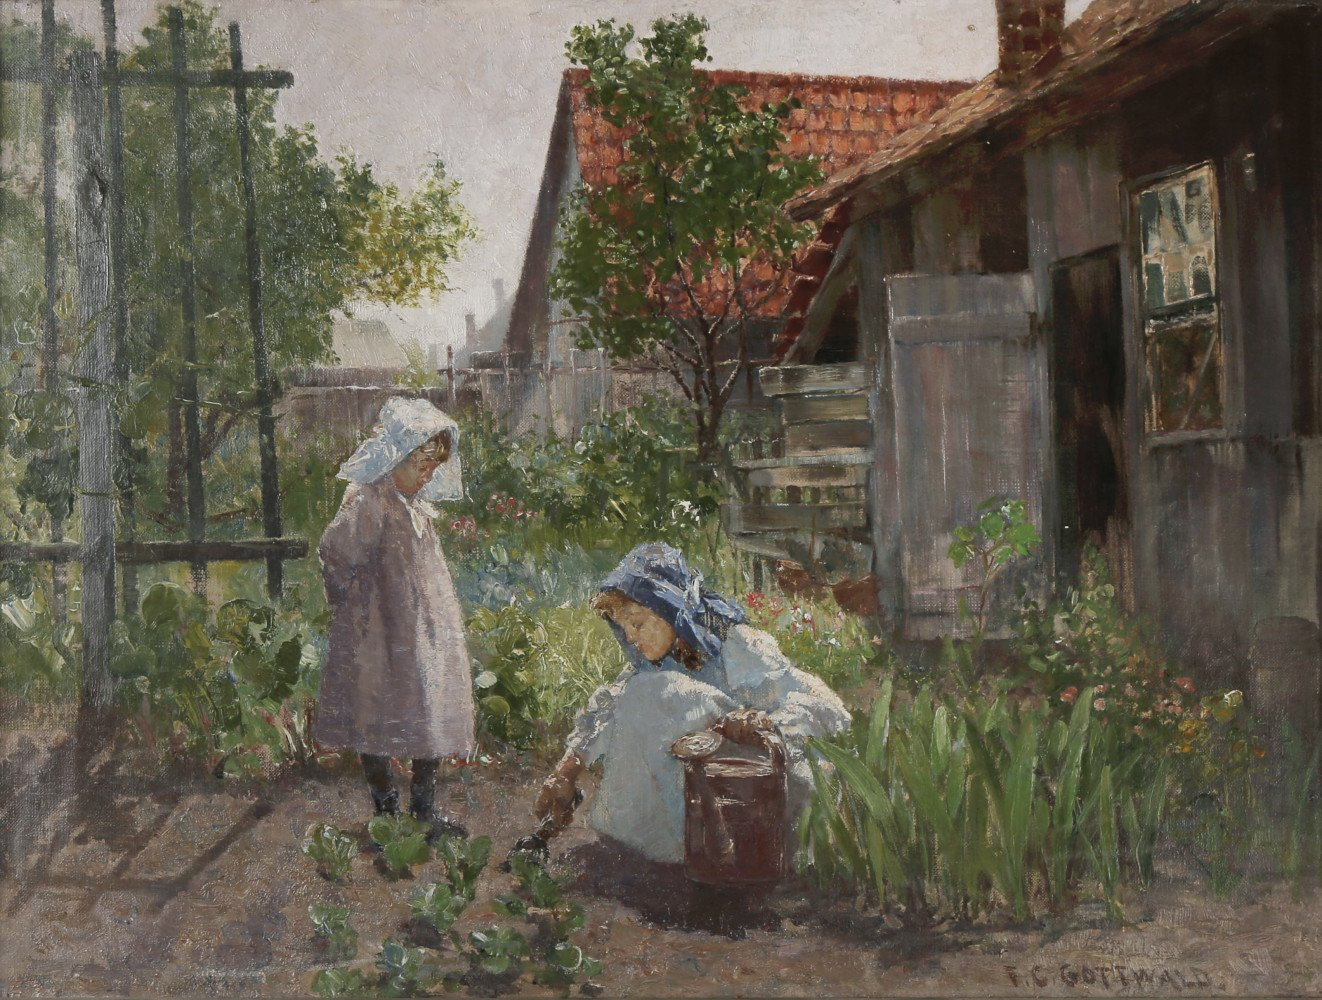 Mother and Child Gardening by Frederick Carl Gottwald